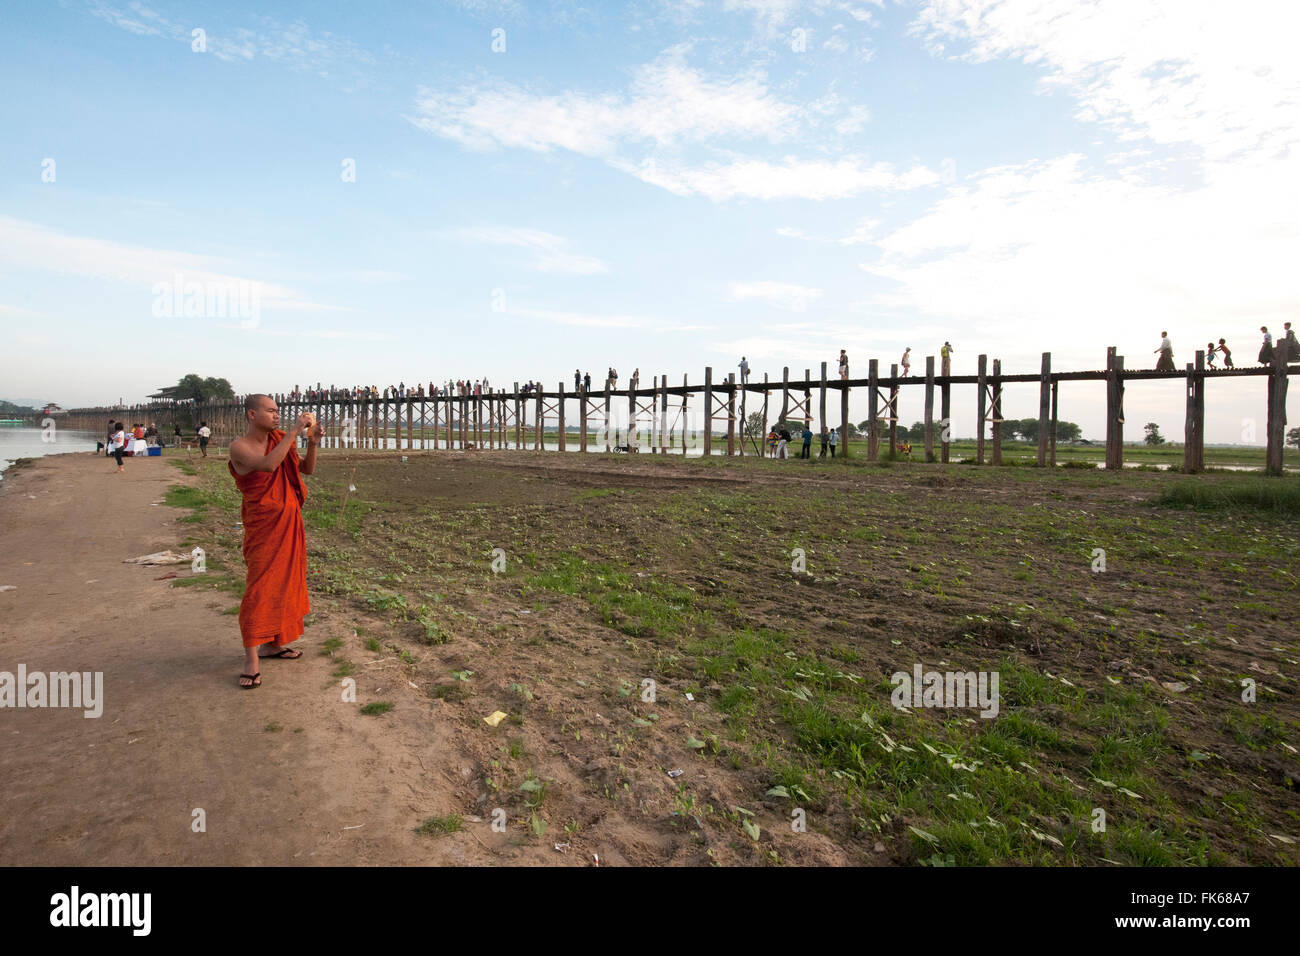 Orange robed monk photographing people crossing U Bein's Bridge, supported by 984 teak posts over Thaumthaman - Stock Image